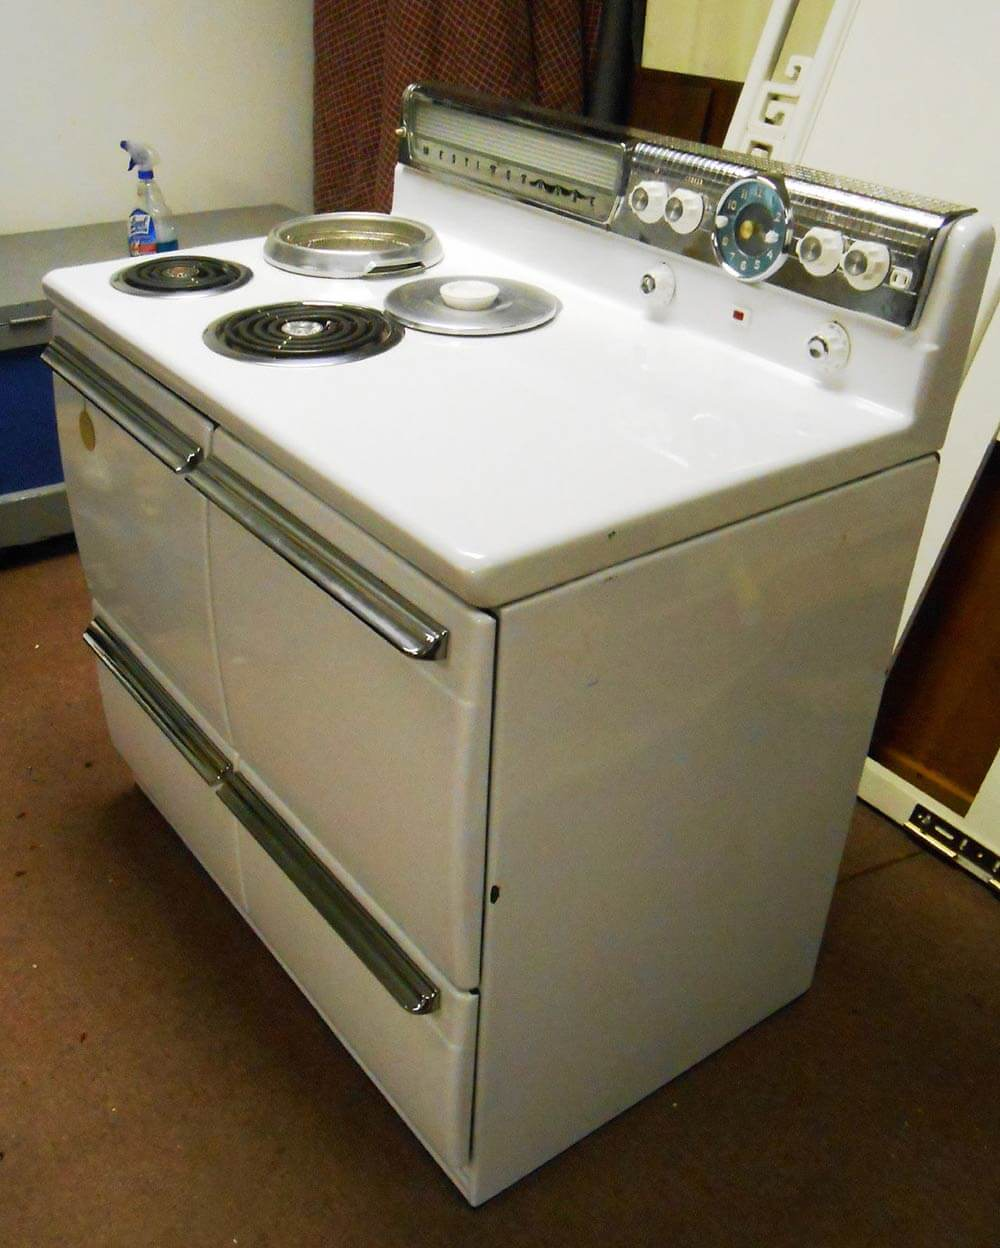 New Old Stock Westinghouse DD 74 range - discovered after 60